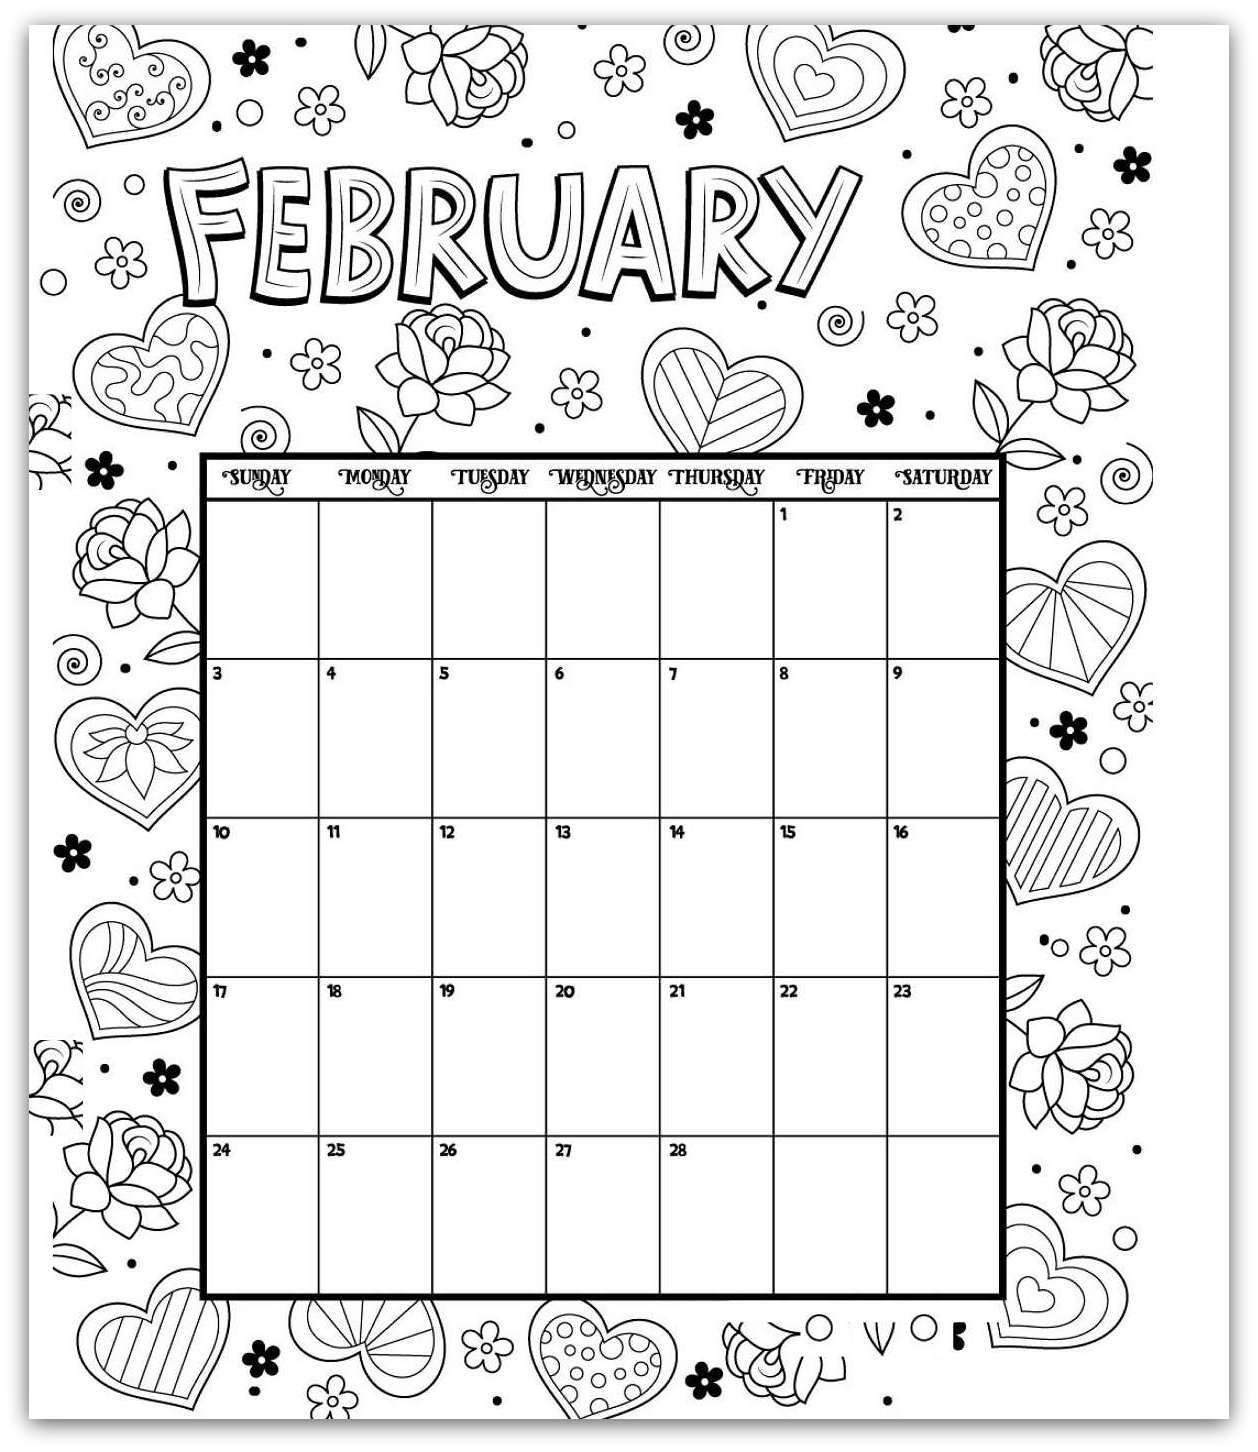 february 2019 coloring page printable calendar | Kids ...